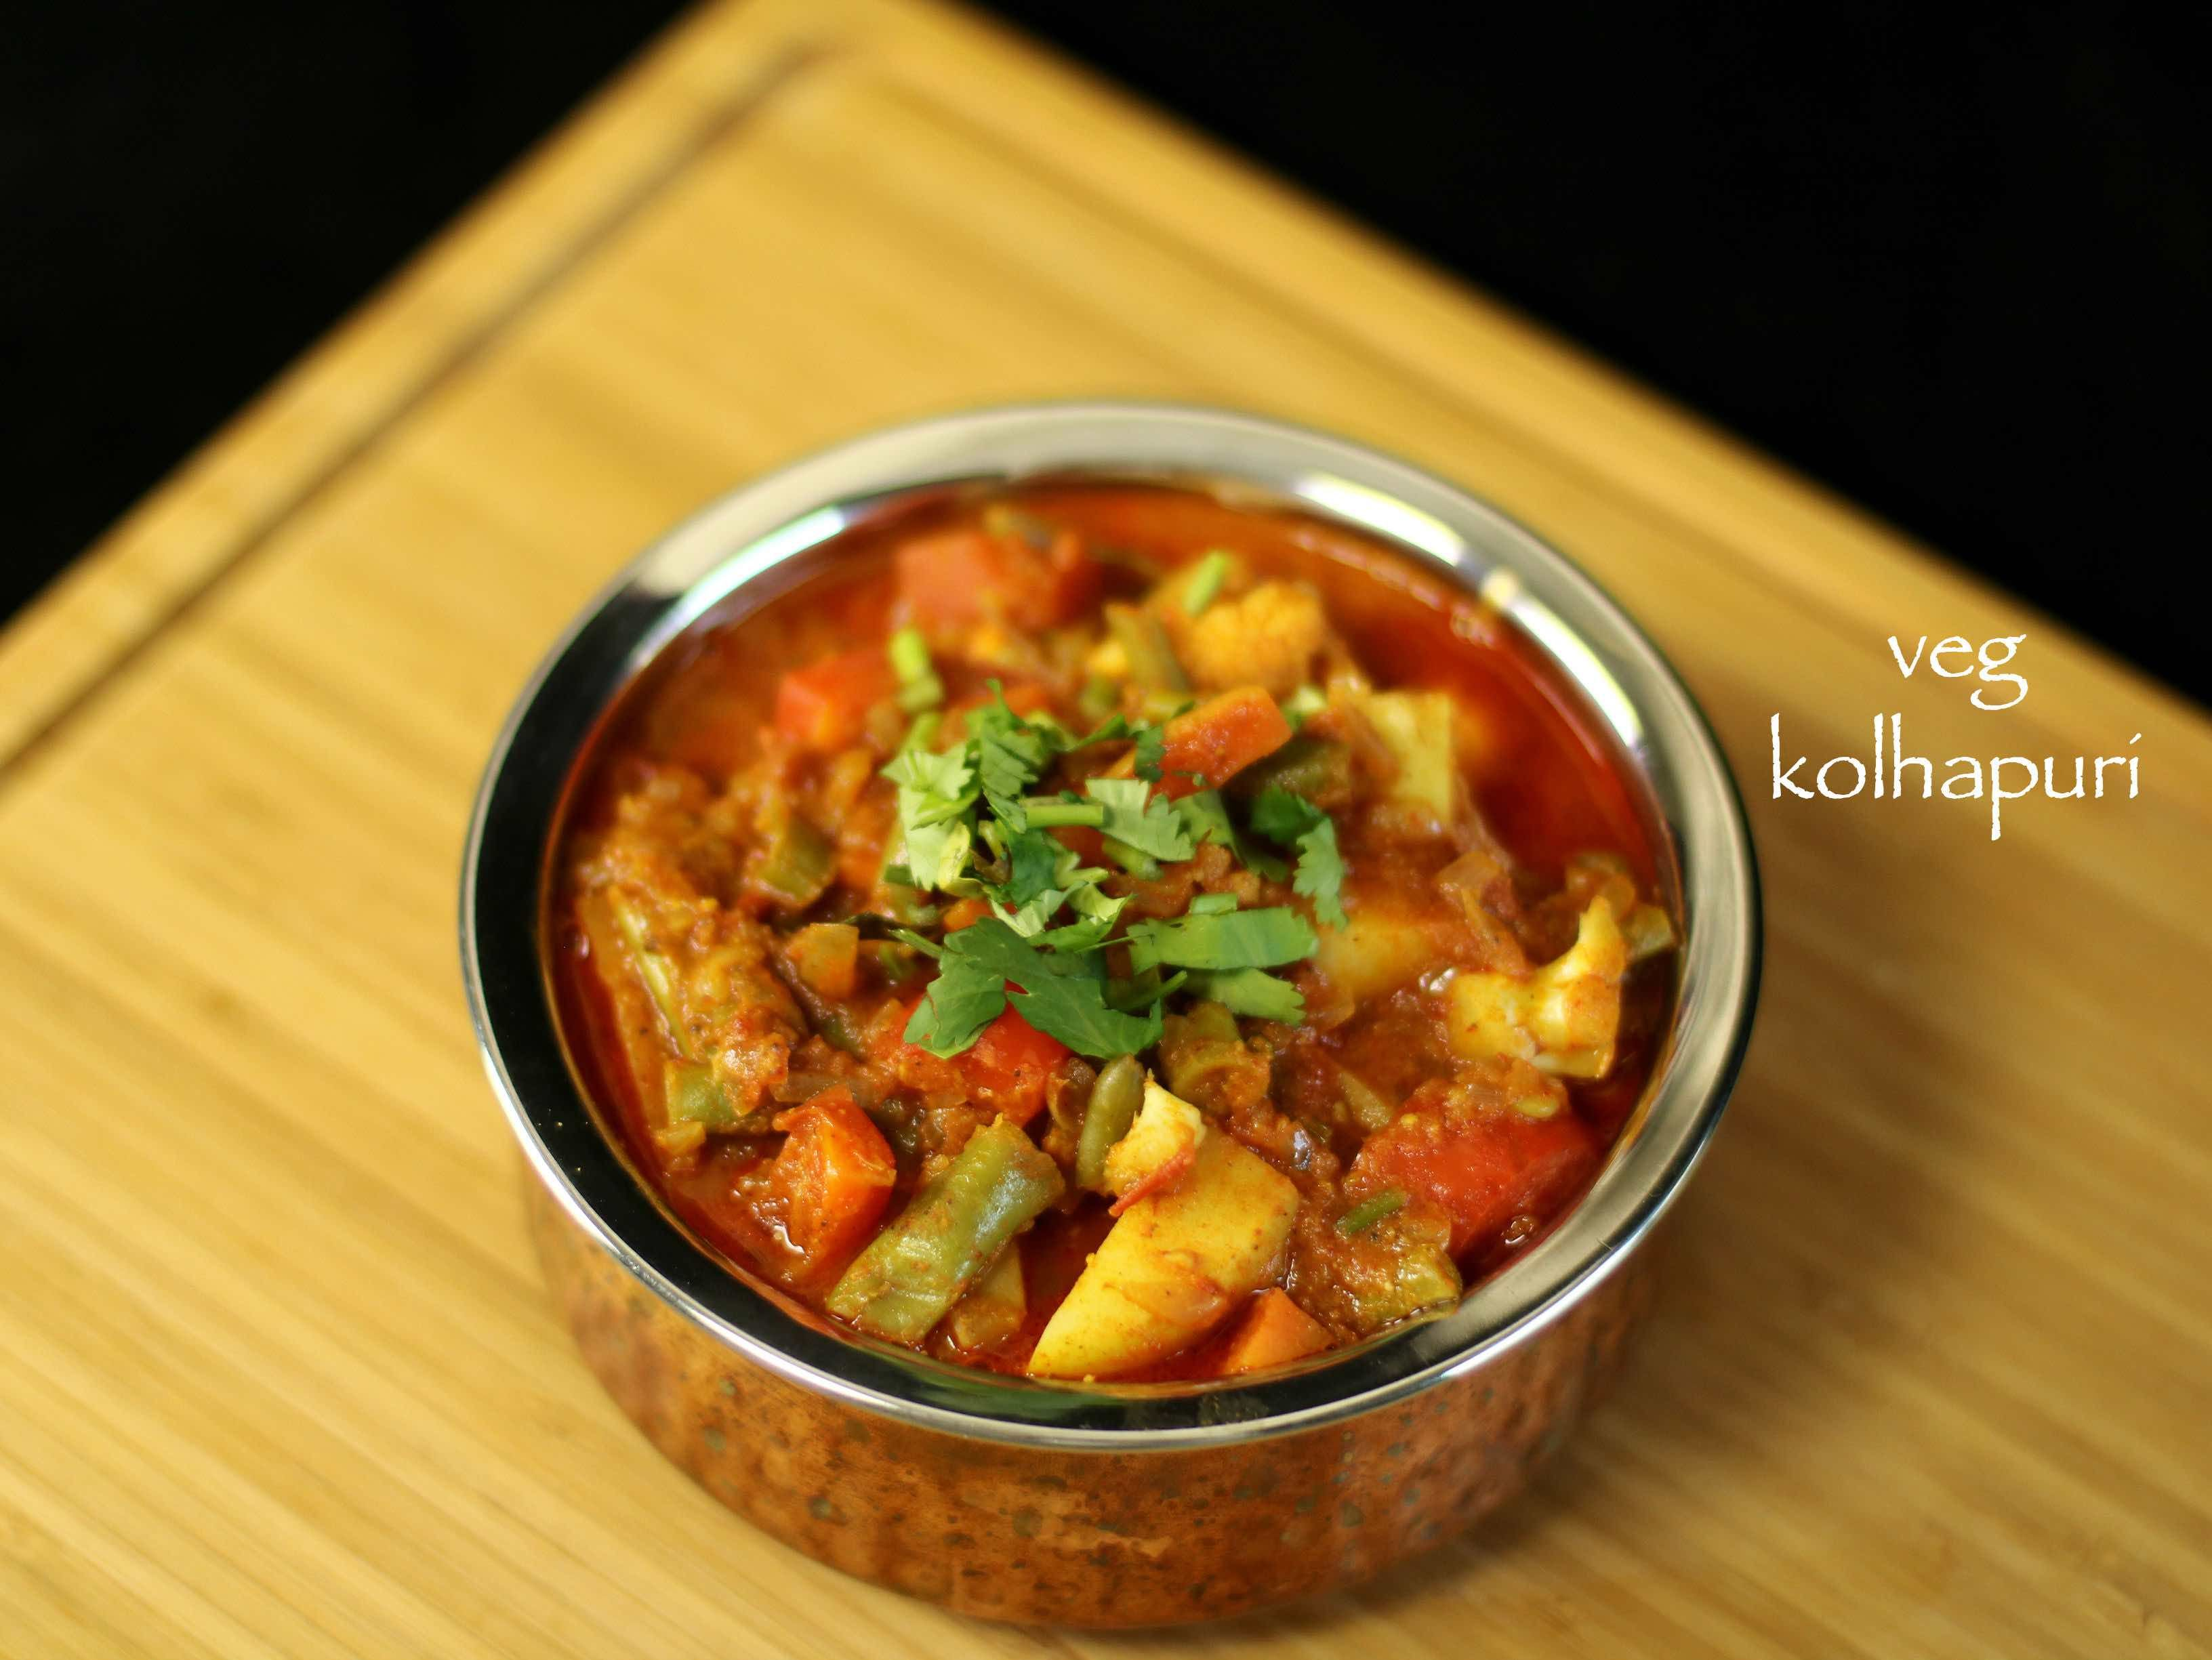 Veg kolhapuri recipe vegetable kolhapuri recipe restaurant style food forumfinder Images